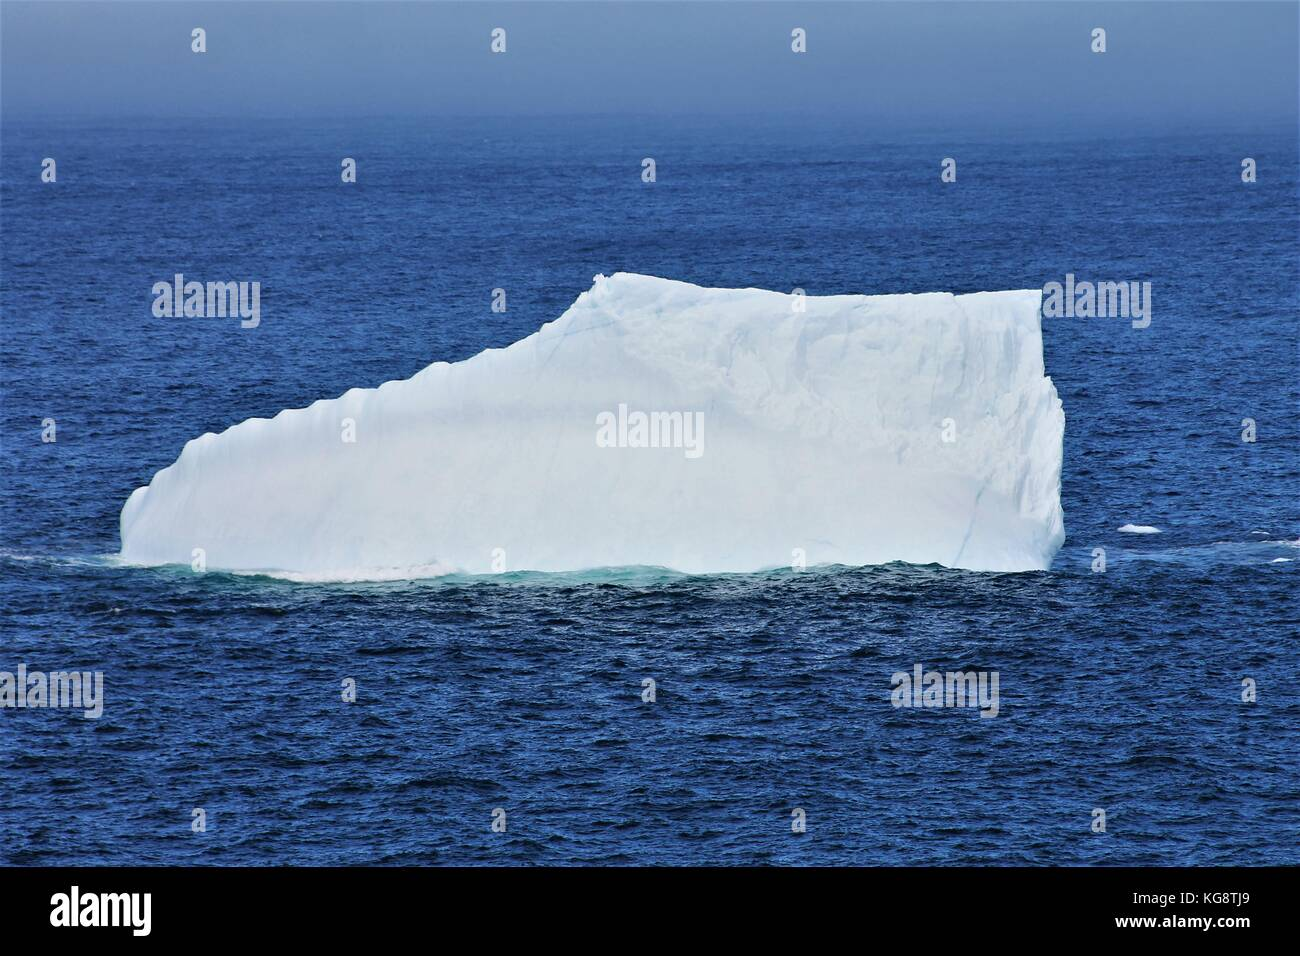 Iceberg in the Atlantic Ocean, Logy Bay-Middle Cove-Outer Cove, Newfoundland Labrador - Stock Image